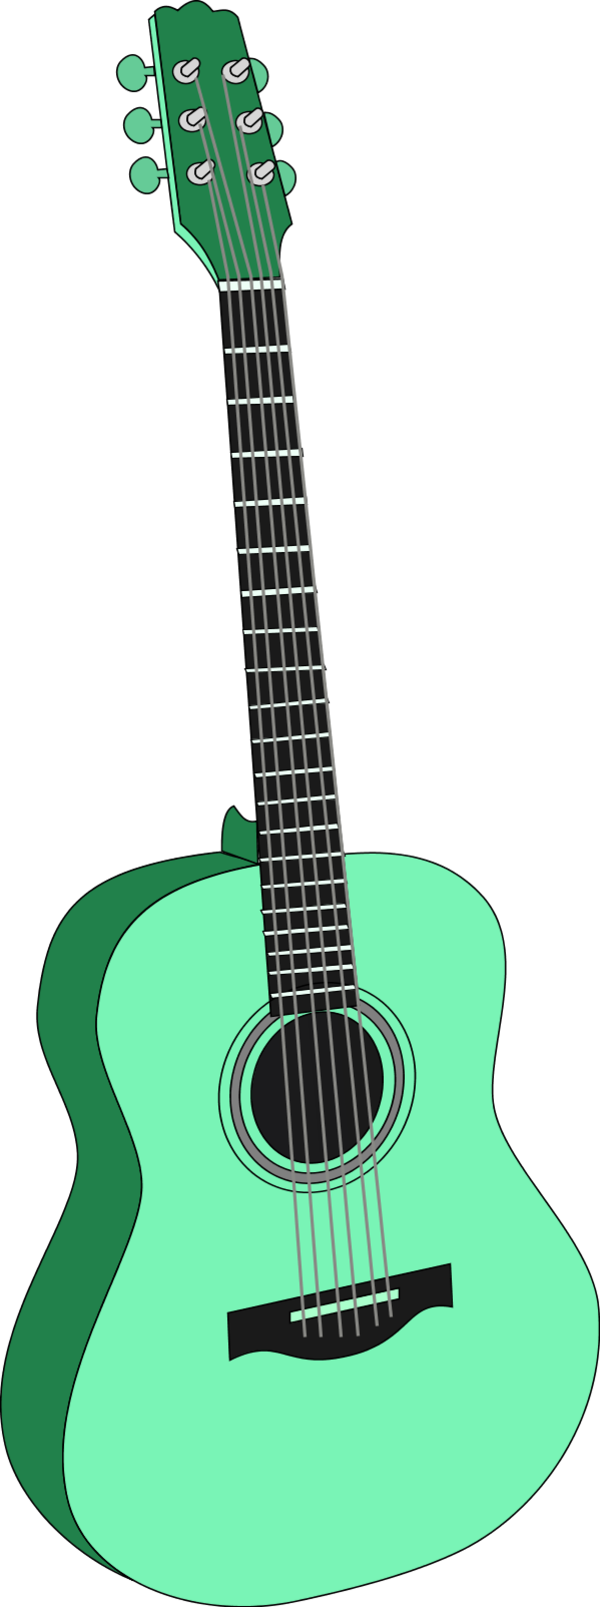 free download Acoustic clipart cute. Riff panda free images.